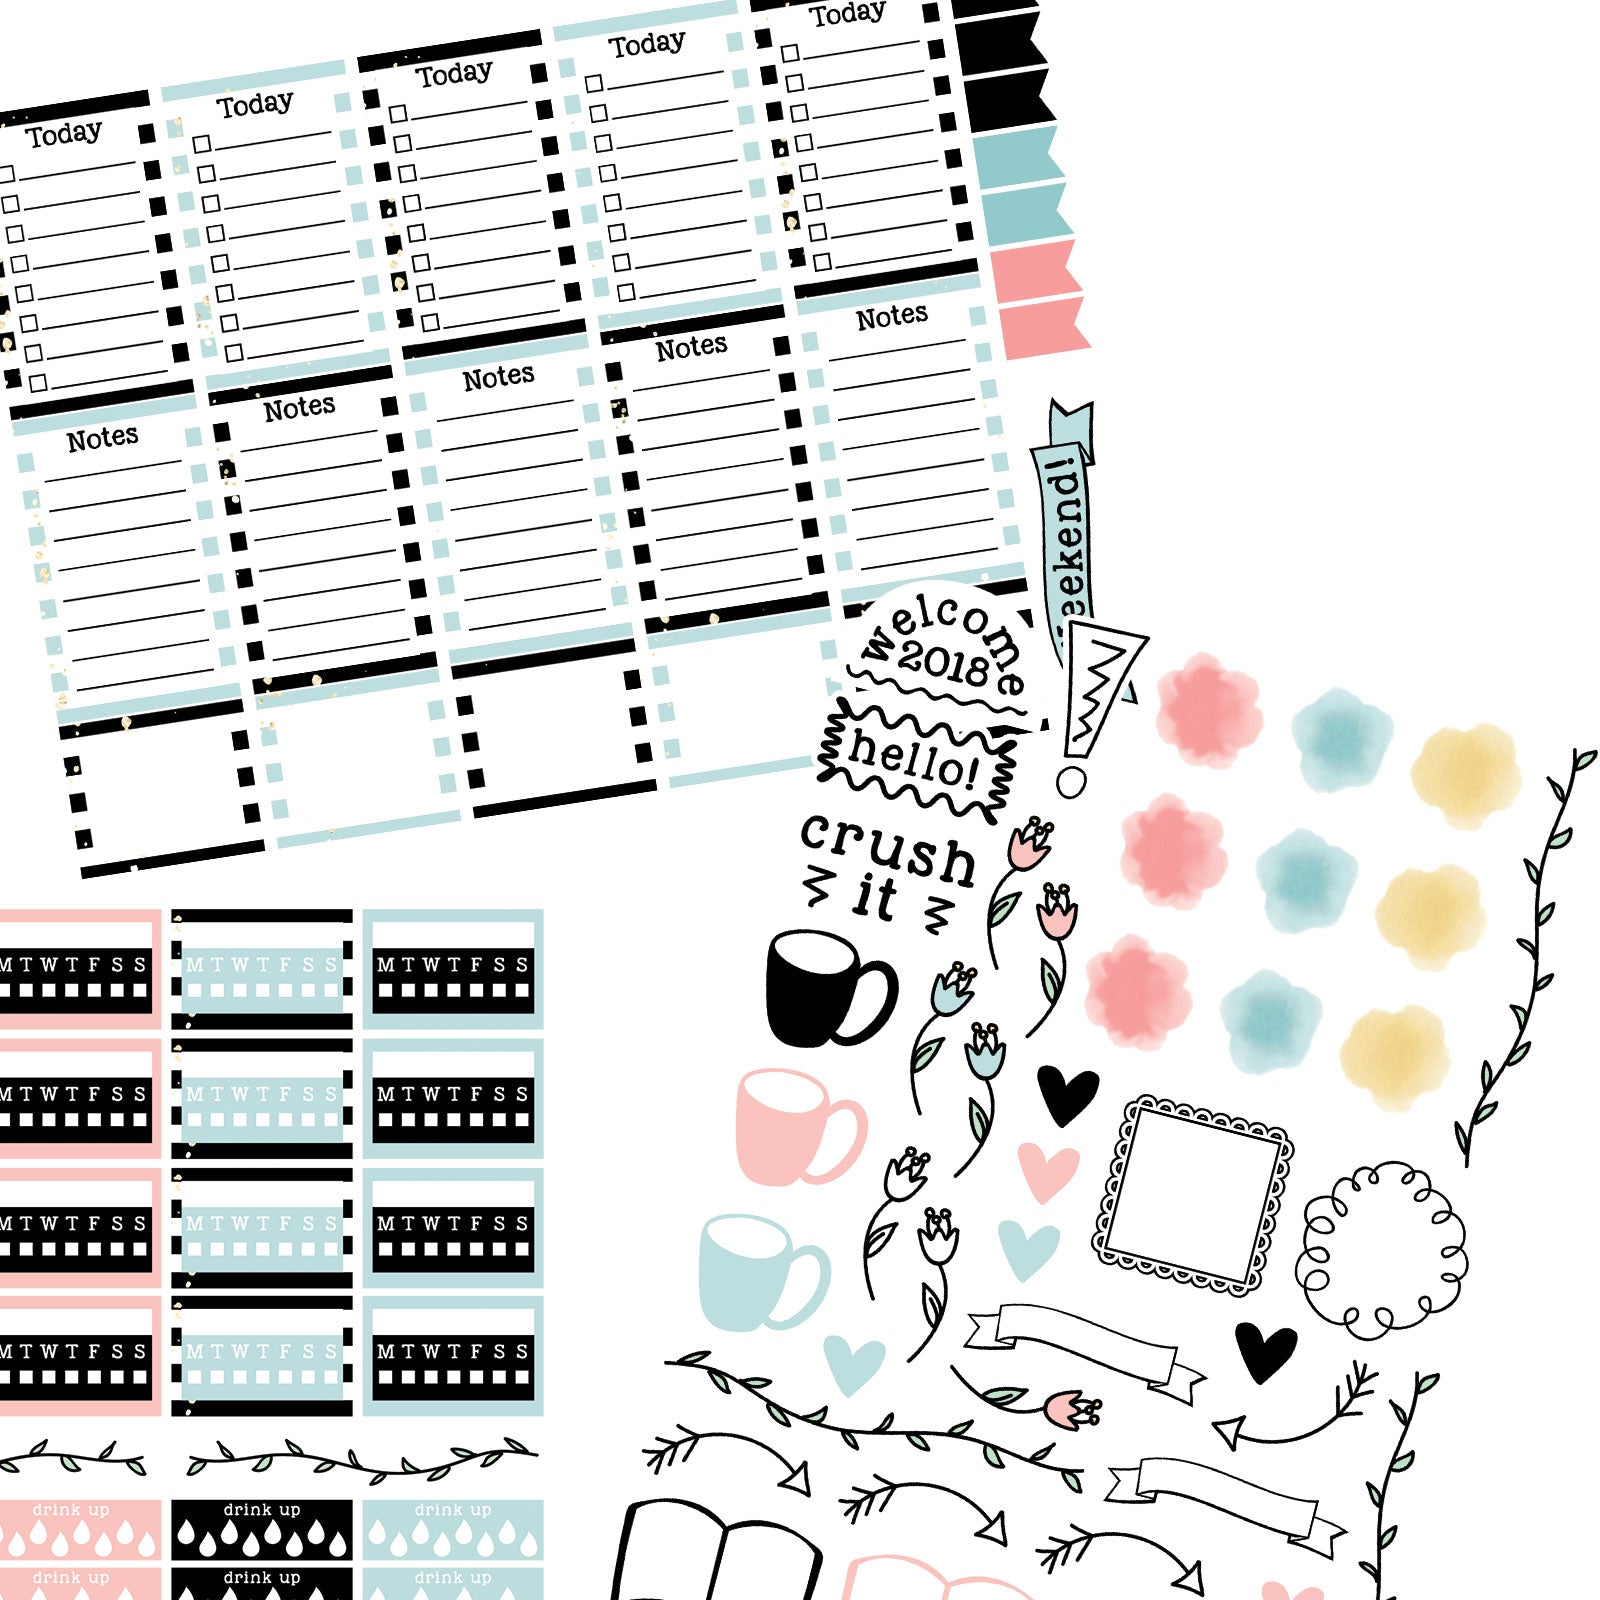 Monthly Freebie - January Planner Stickers with pink and blue striped theme, tracks, doodle page and more - Free for Personal Use